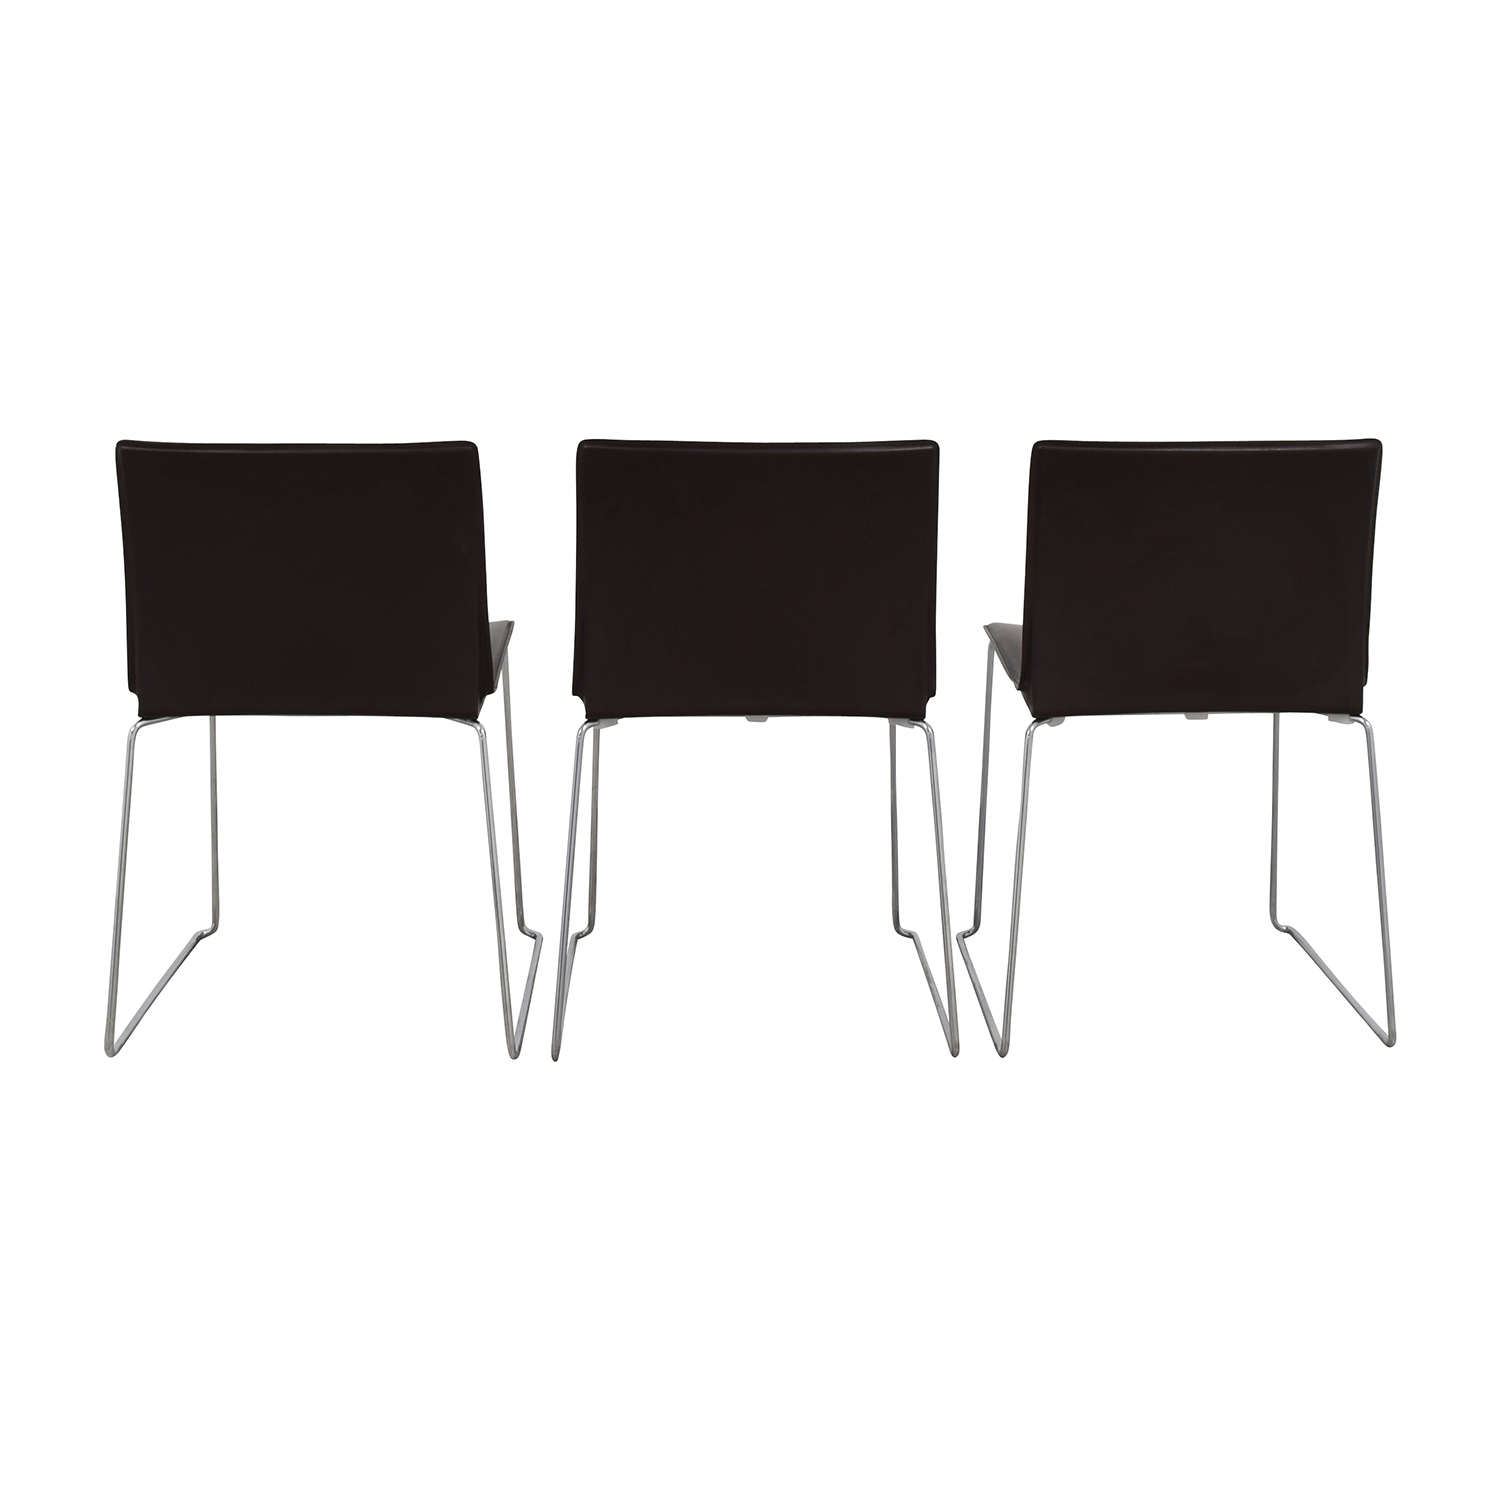 ABC Home & Carpet ABC Home & Carpet Leather Chrome Chairs, Set of Three second hand